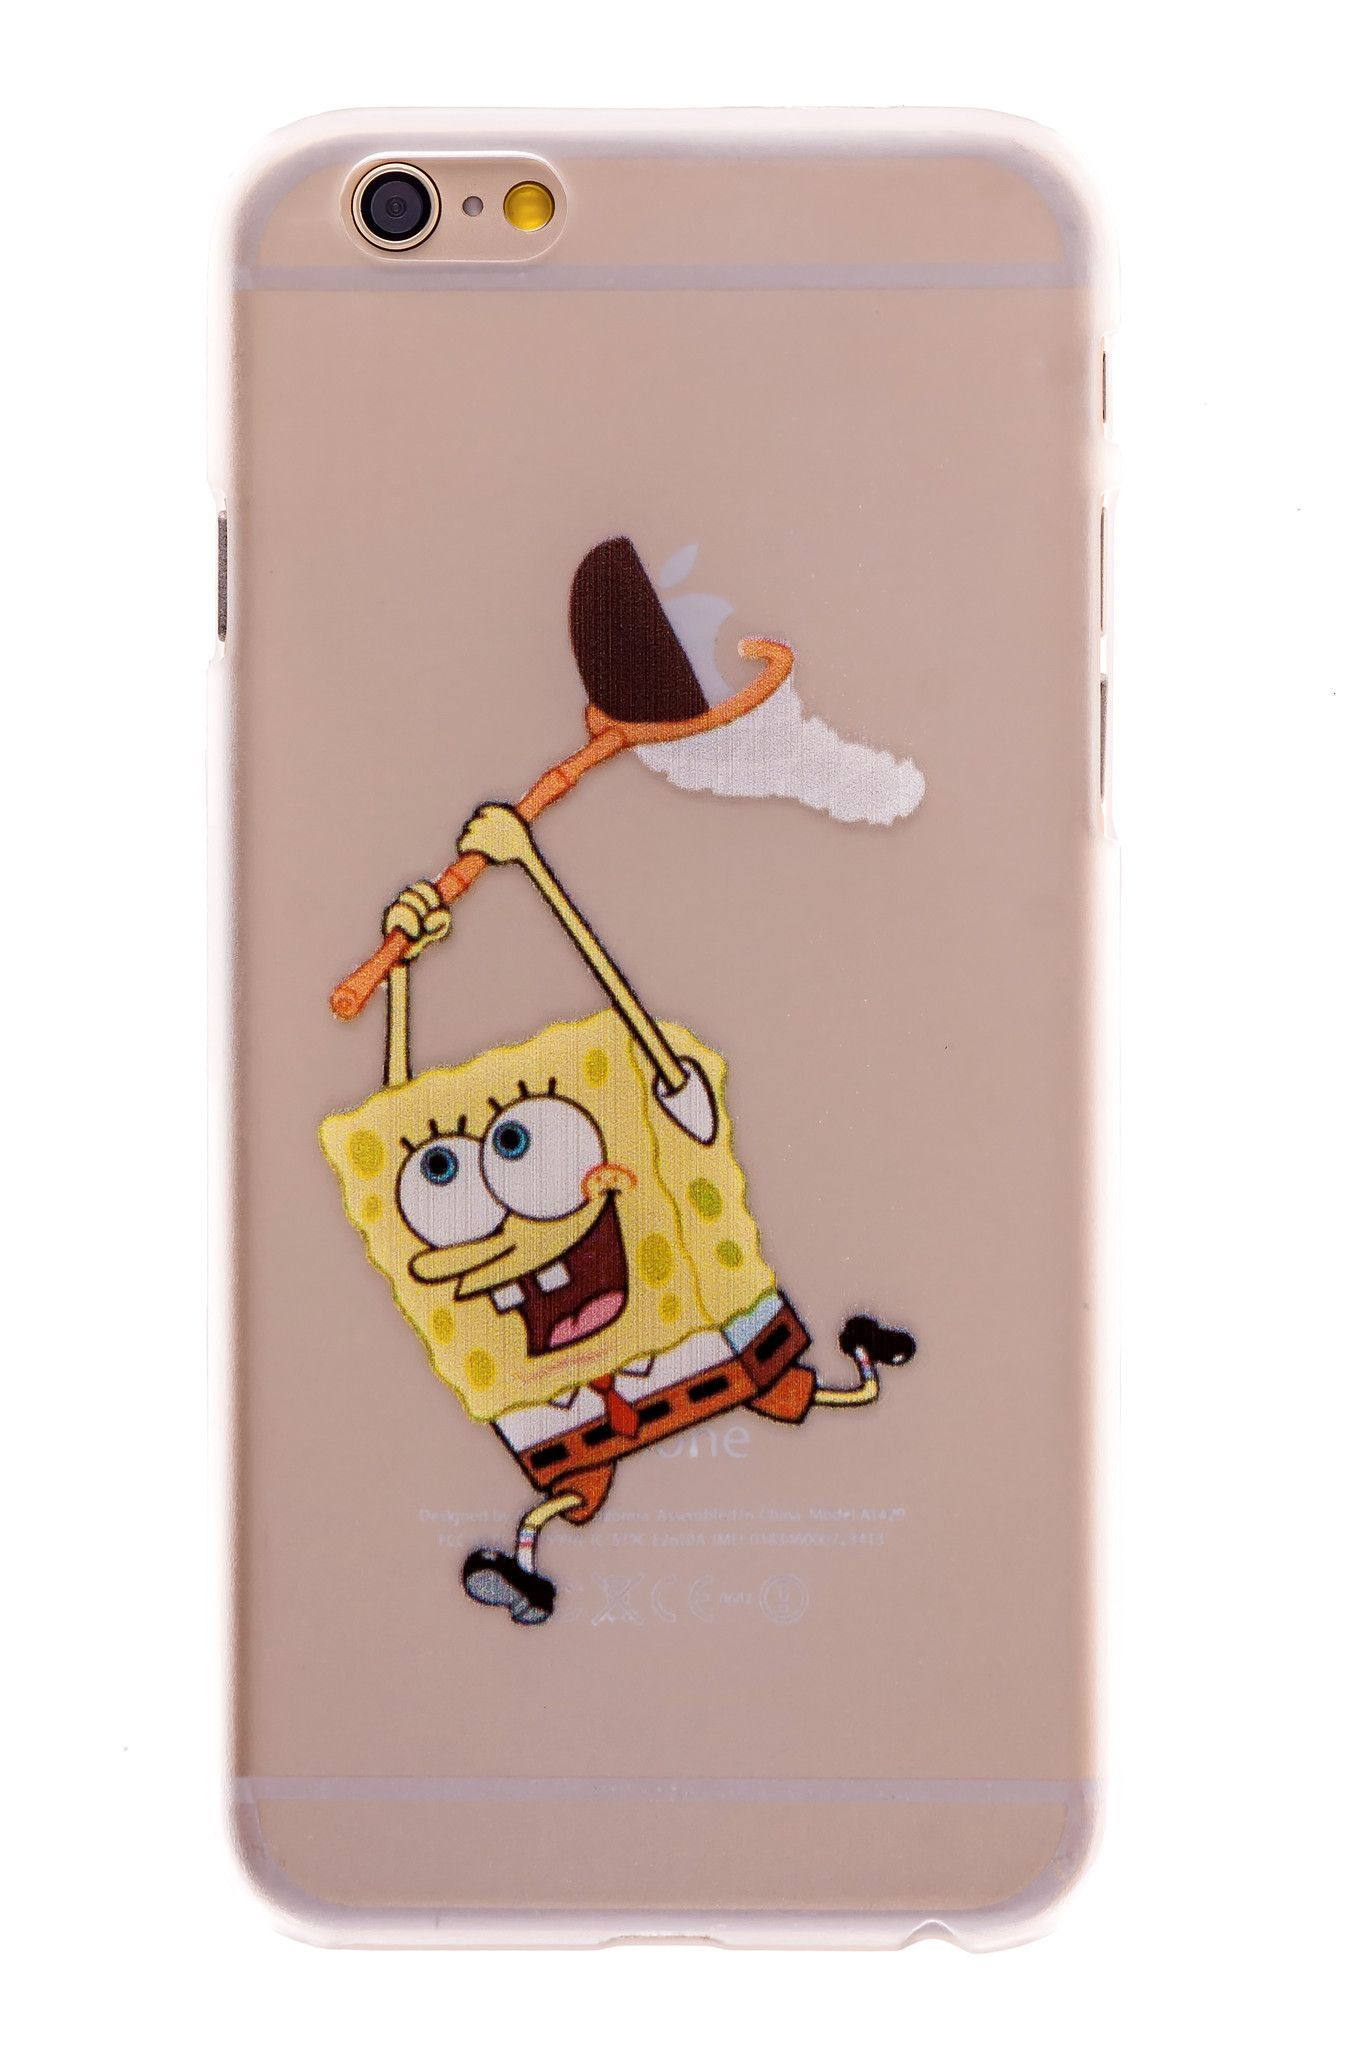 spongebob transparent back cover case for iphone 6 plus phone